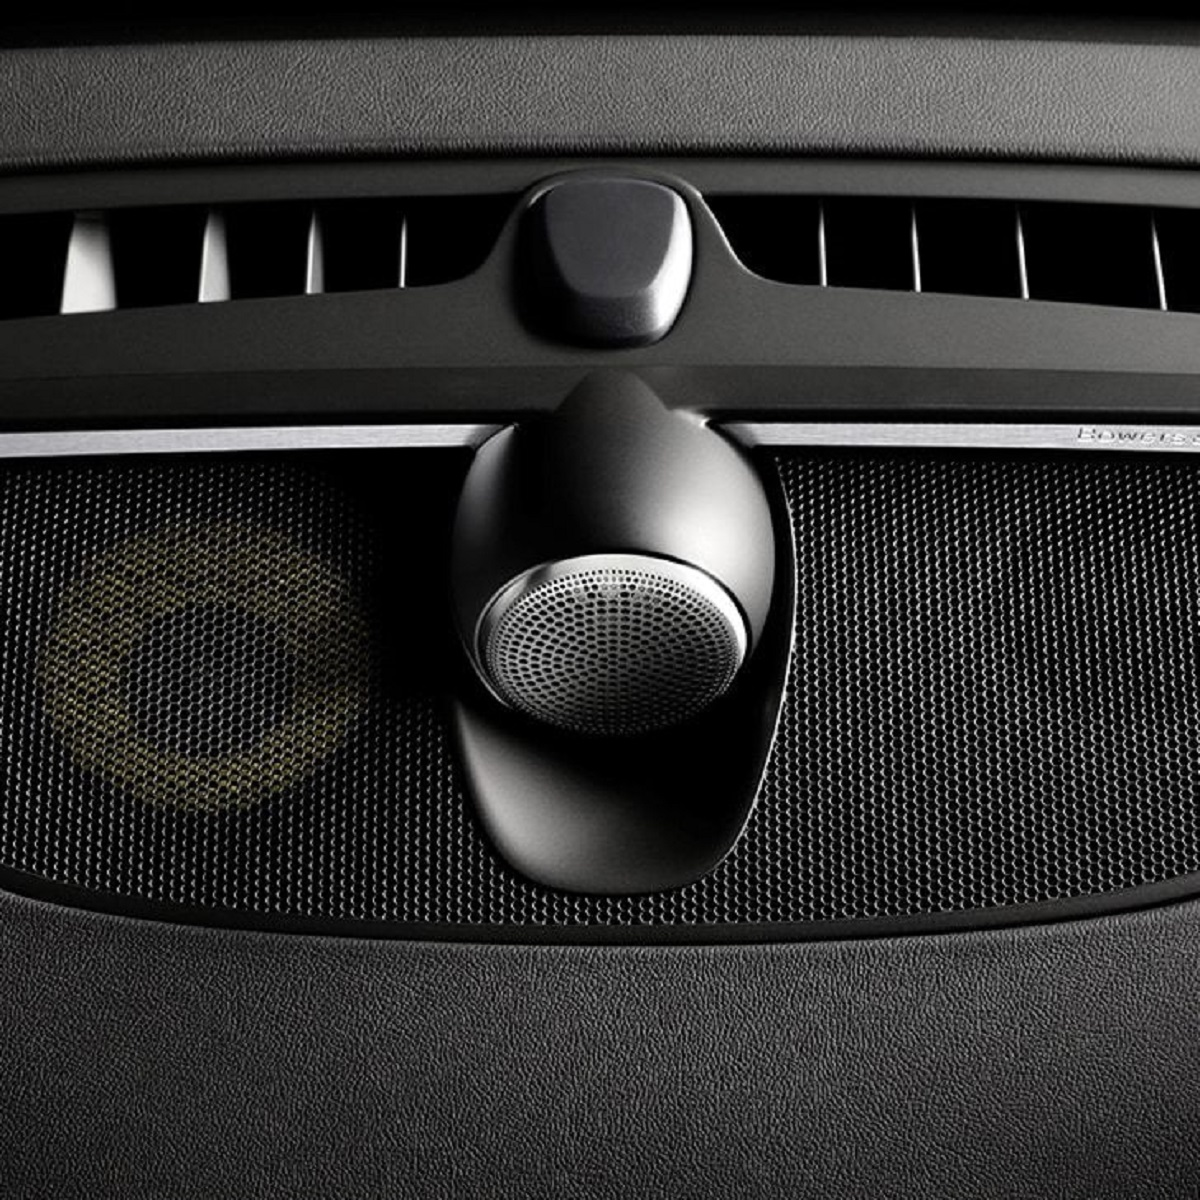 5-d-volvo-tweeter-on-top-technology_0.jpg